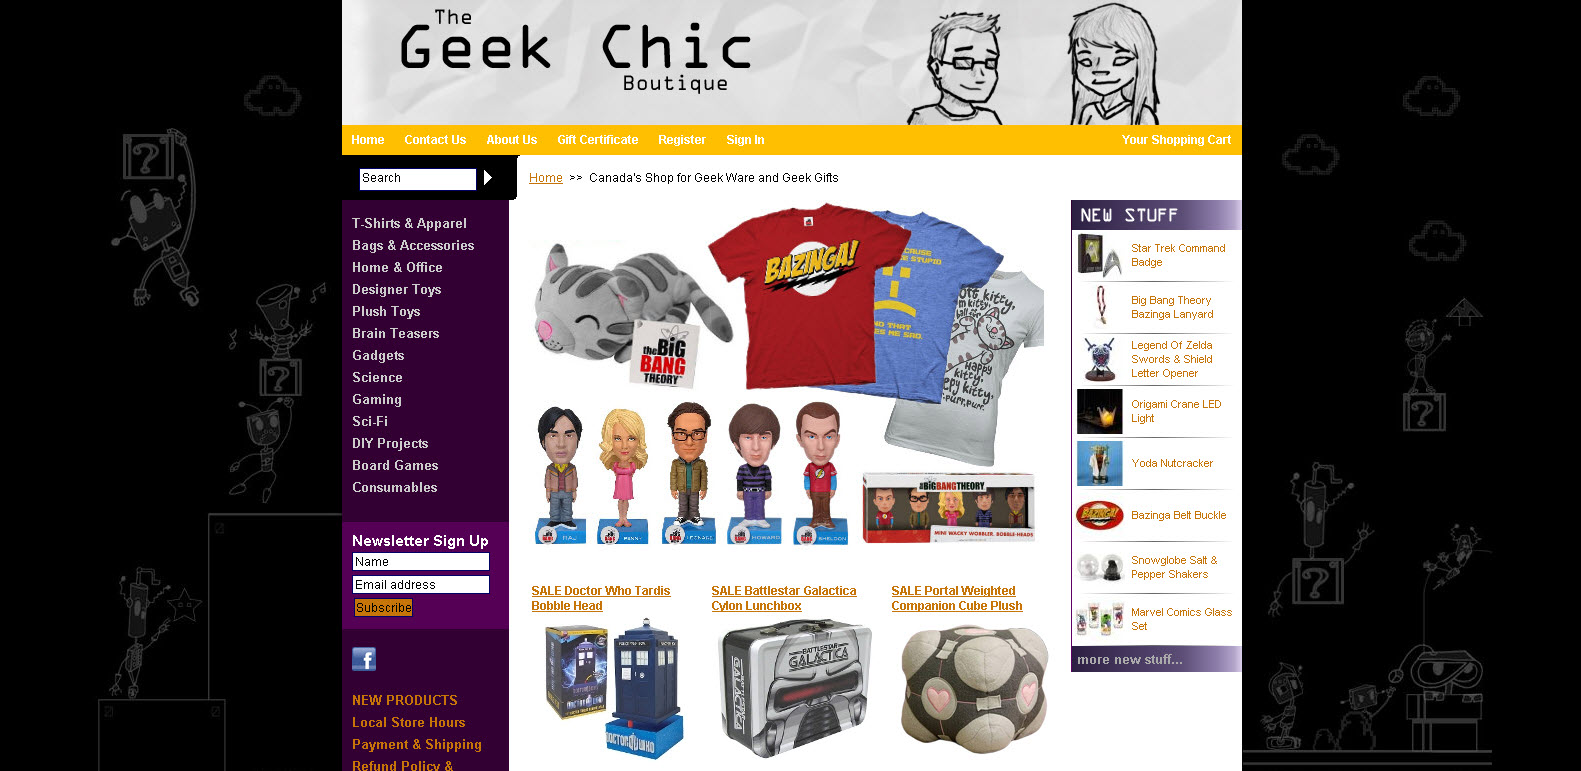 Geek Chic boutique